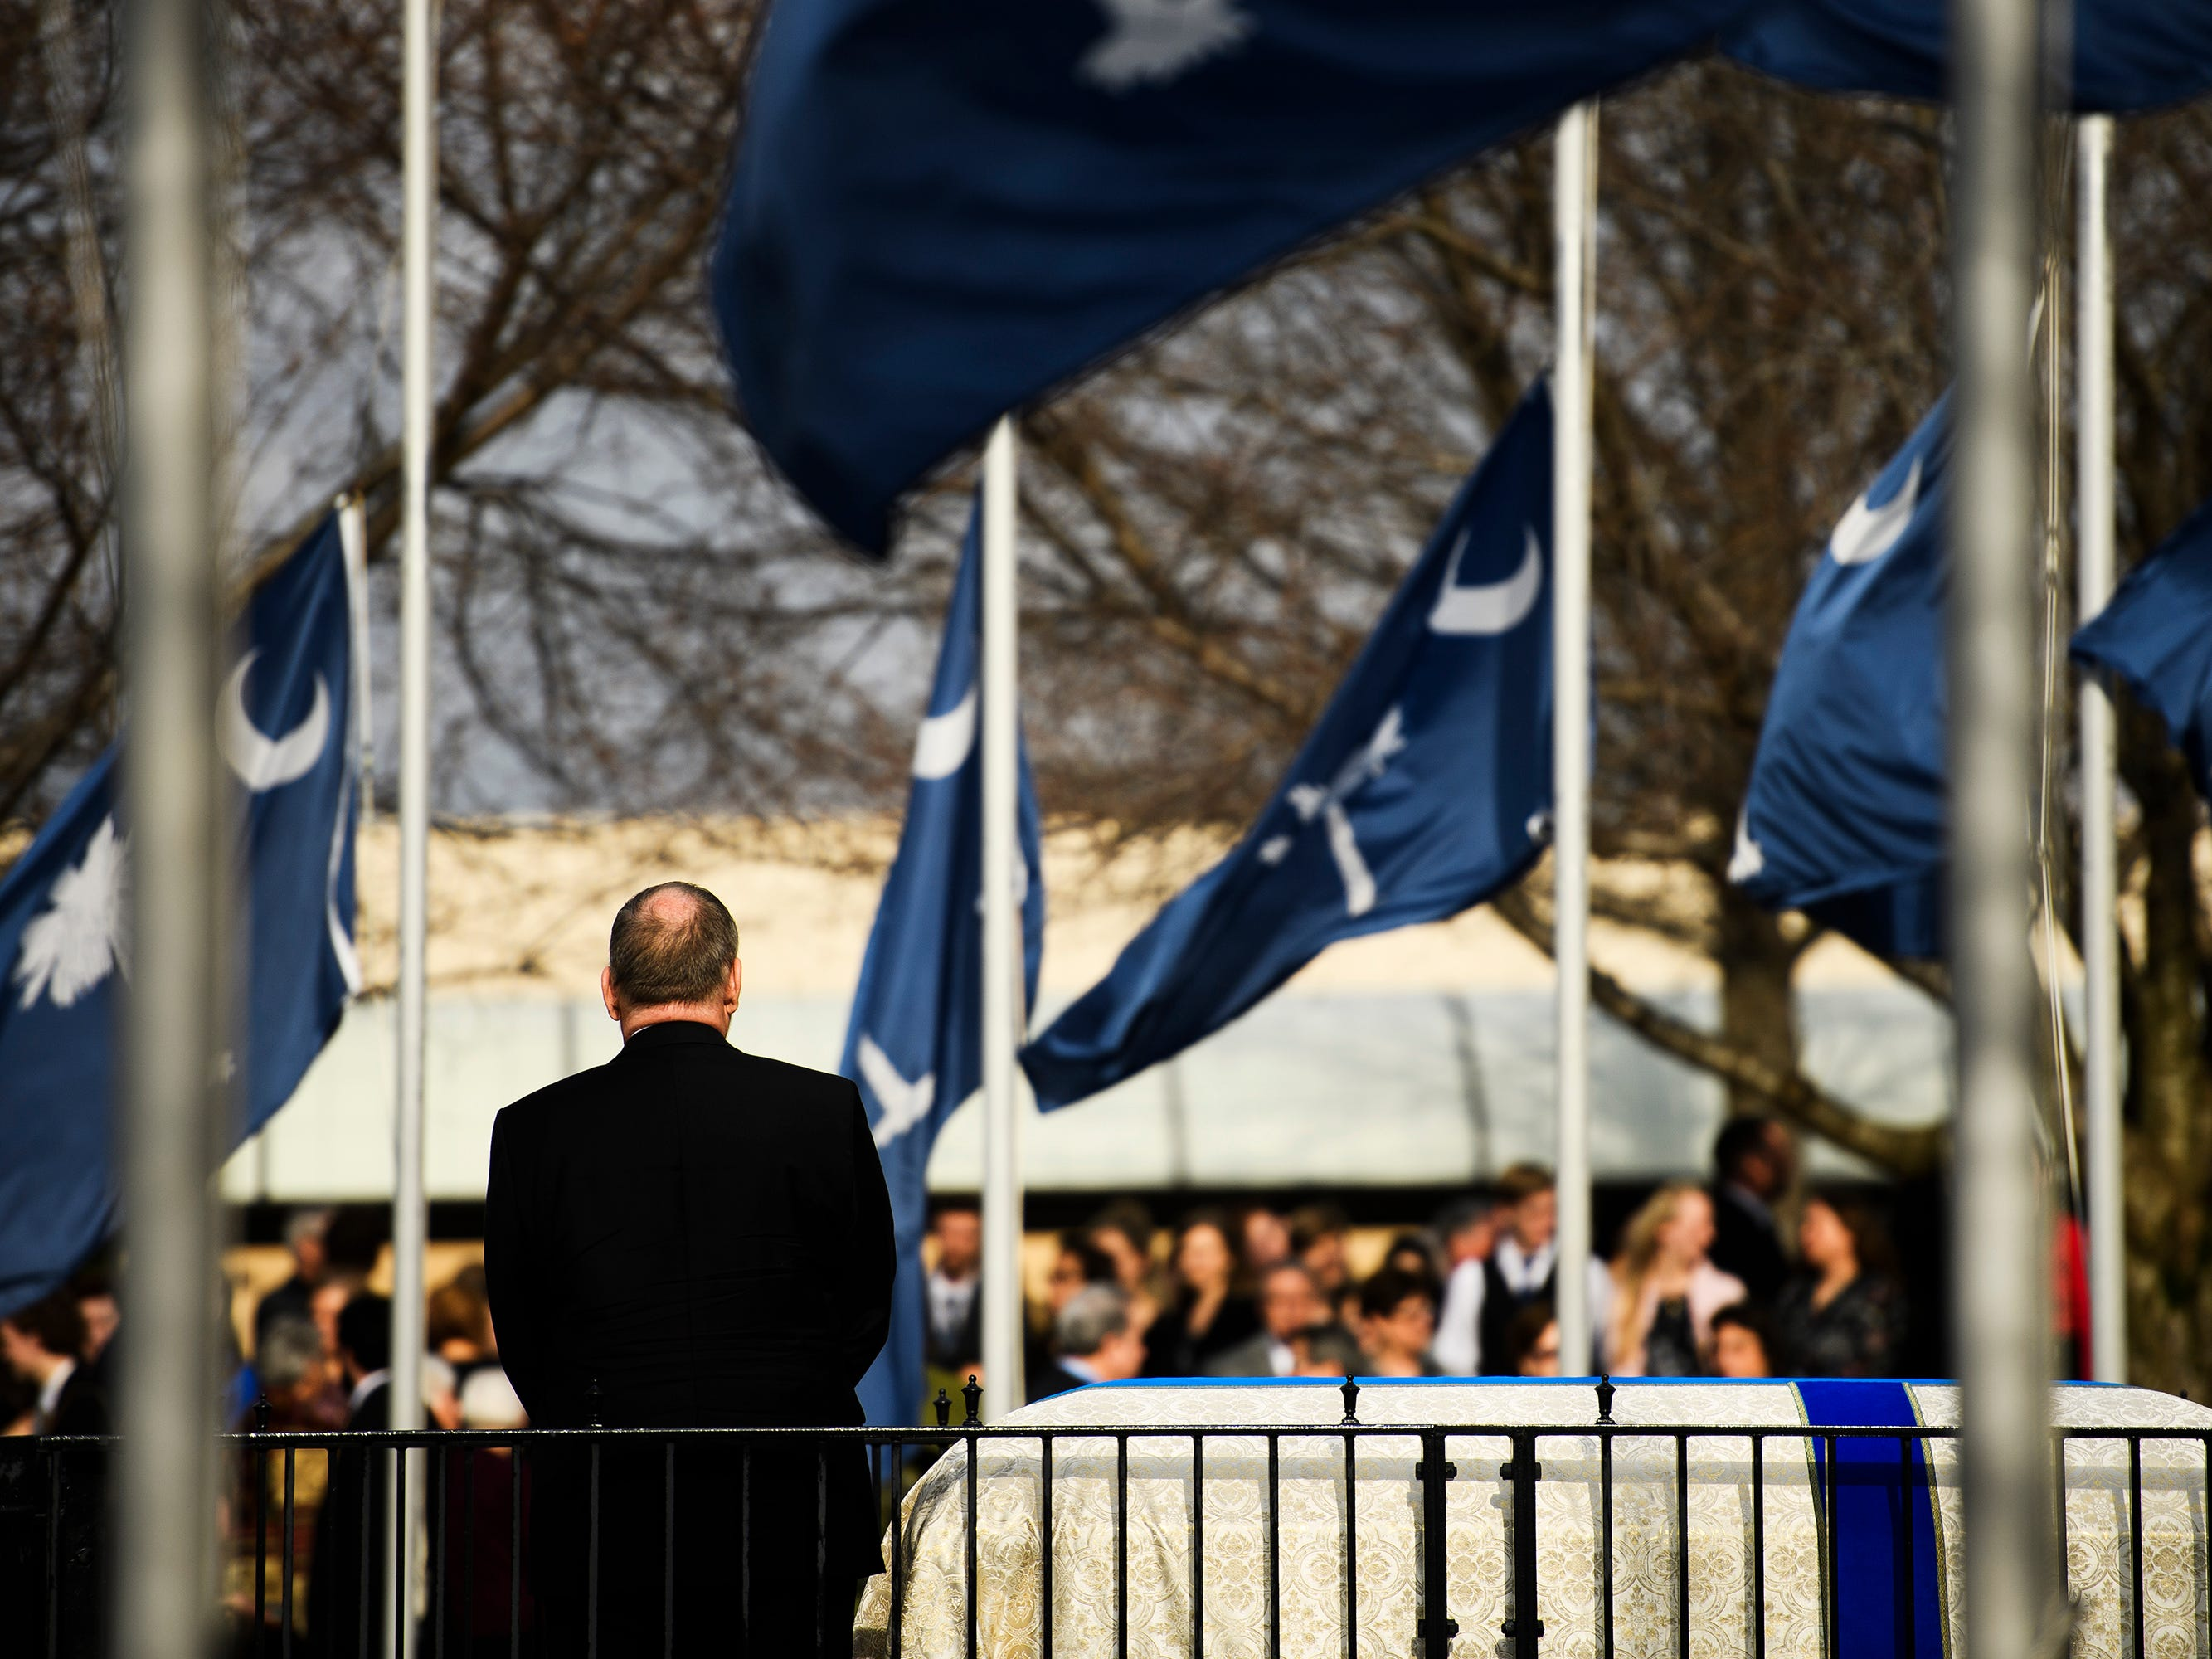 South Carolina state flags fly at half mast as hundreds attend the funeral service of Beneth Peters Jones at Bob Jones University on Wednesday, Feb. 6, 2019.